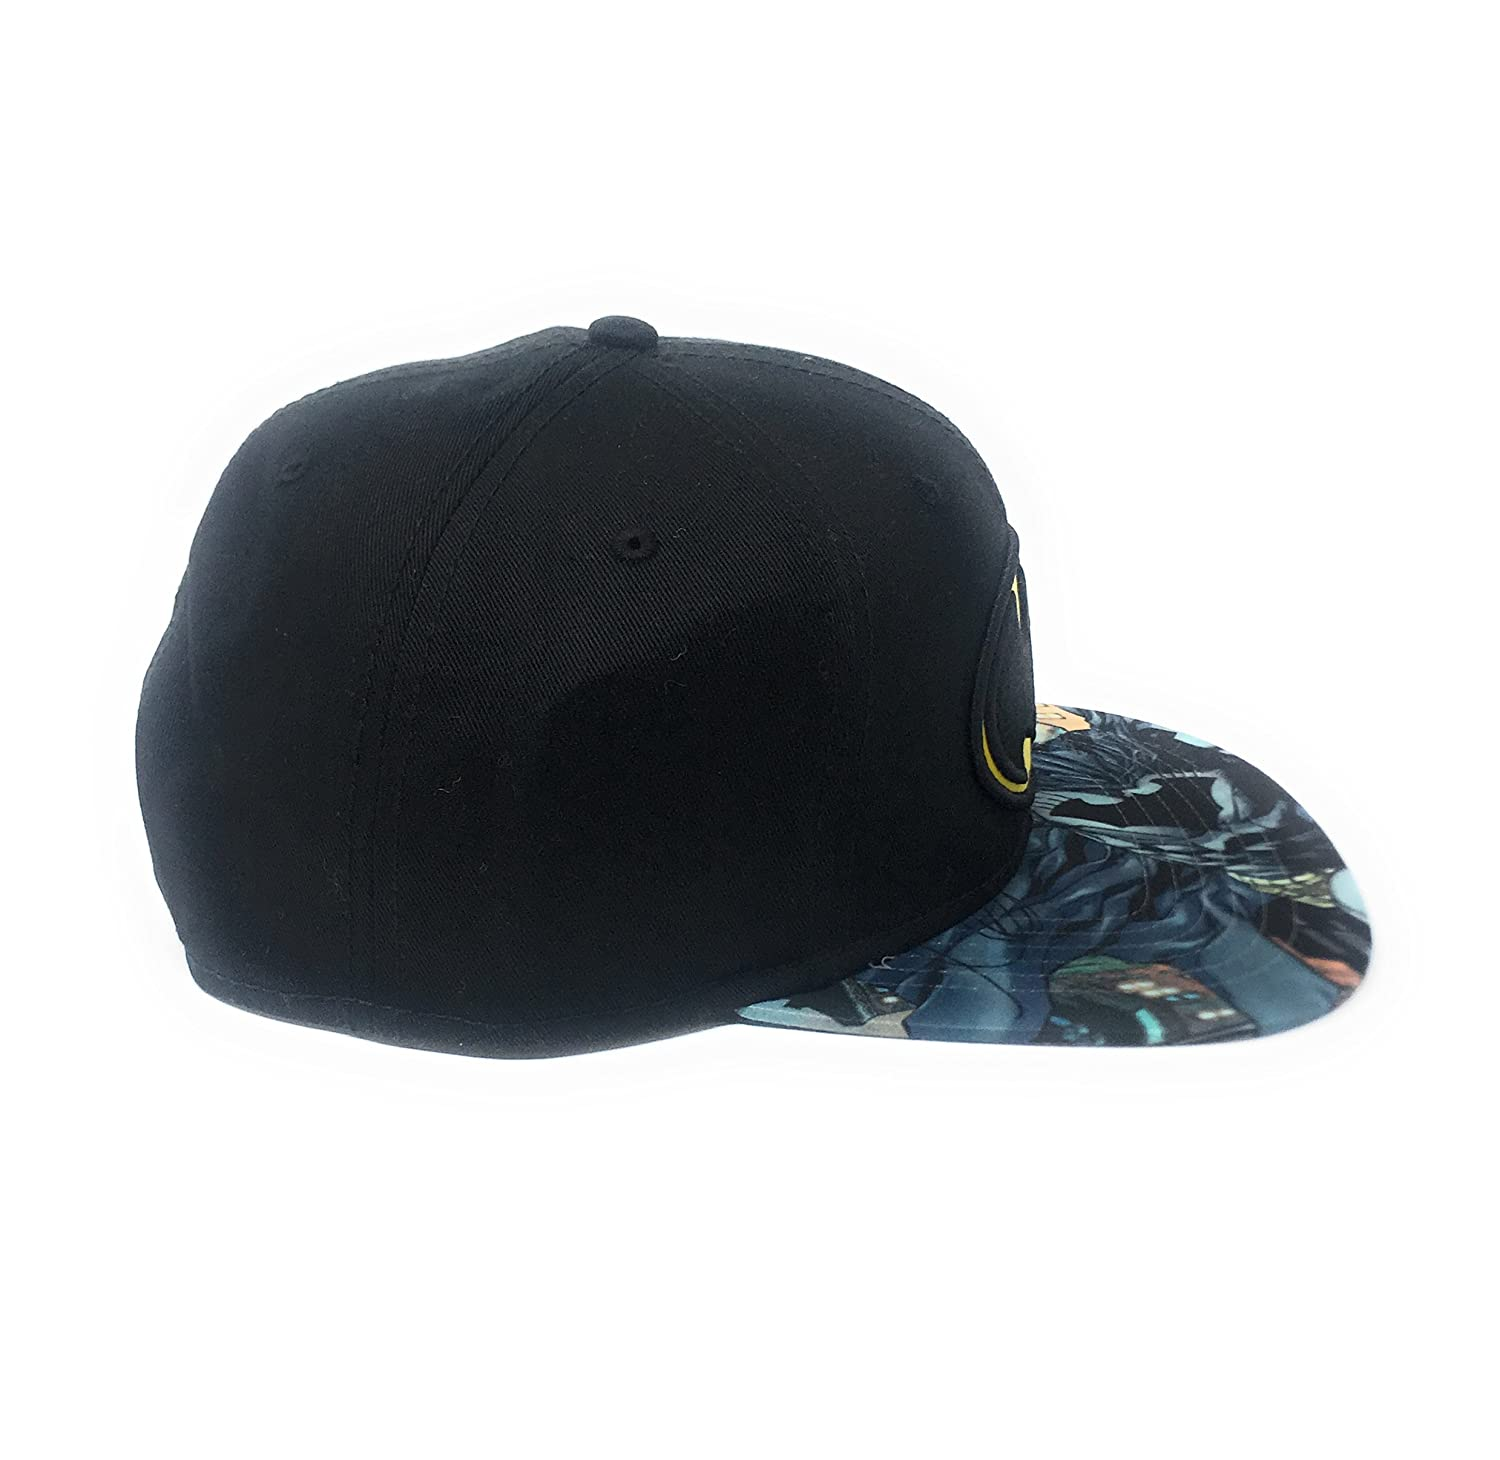 e278d0b5a61c0 Amazon.com  Bioworld Men s Batman Carbon Fiber Snapback Hat O S  Black Yellow  Clothing